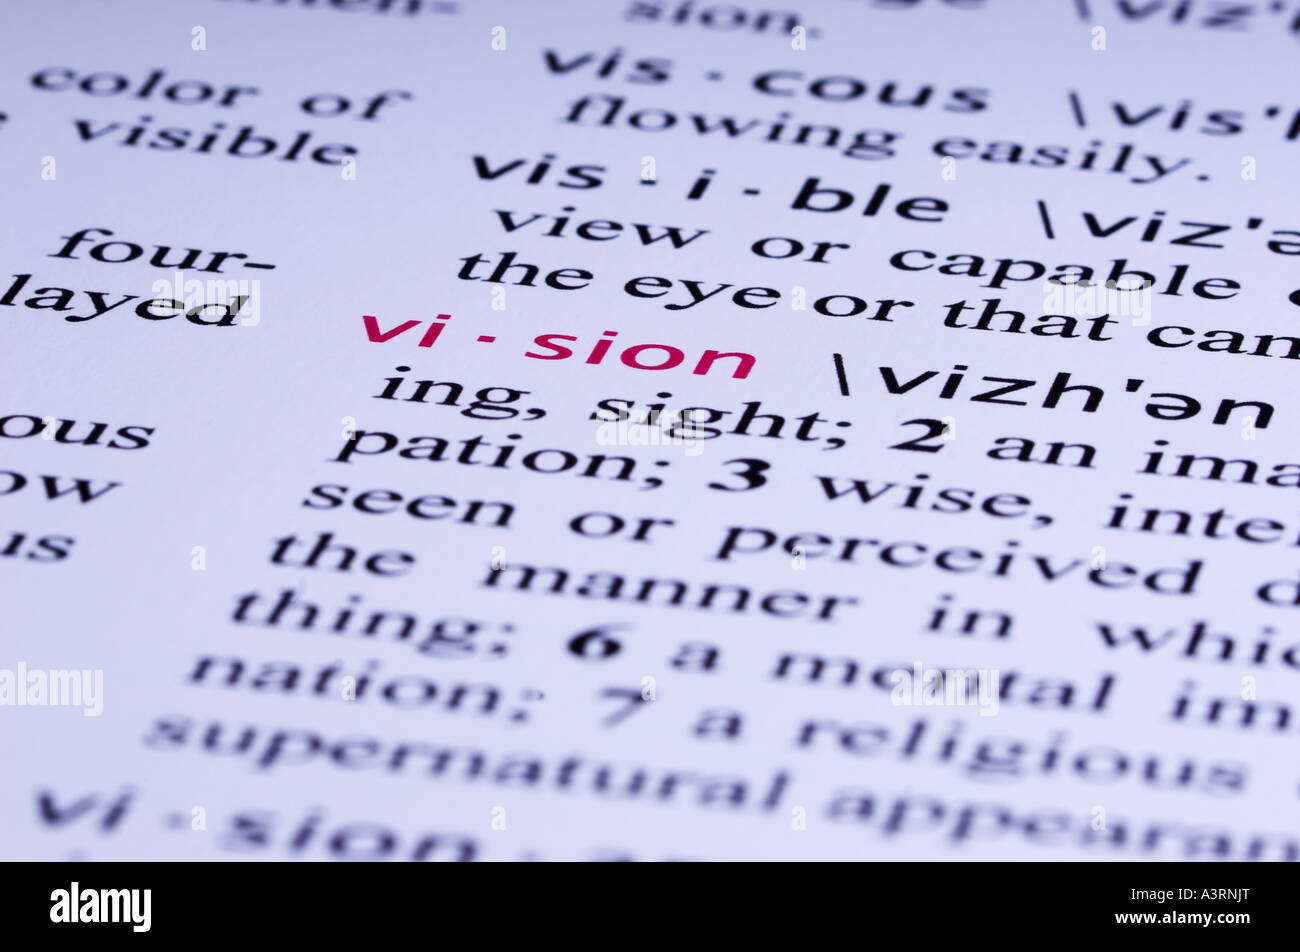 The Definition For Word VISION Is Highlighted In A Fictitious Dictionary.    Stock Image